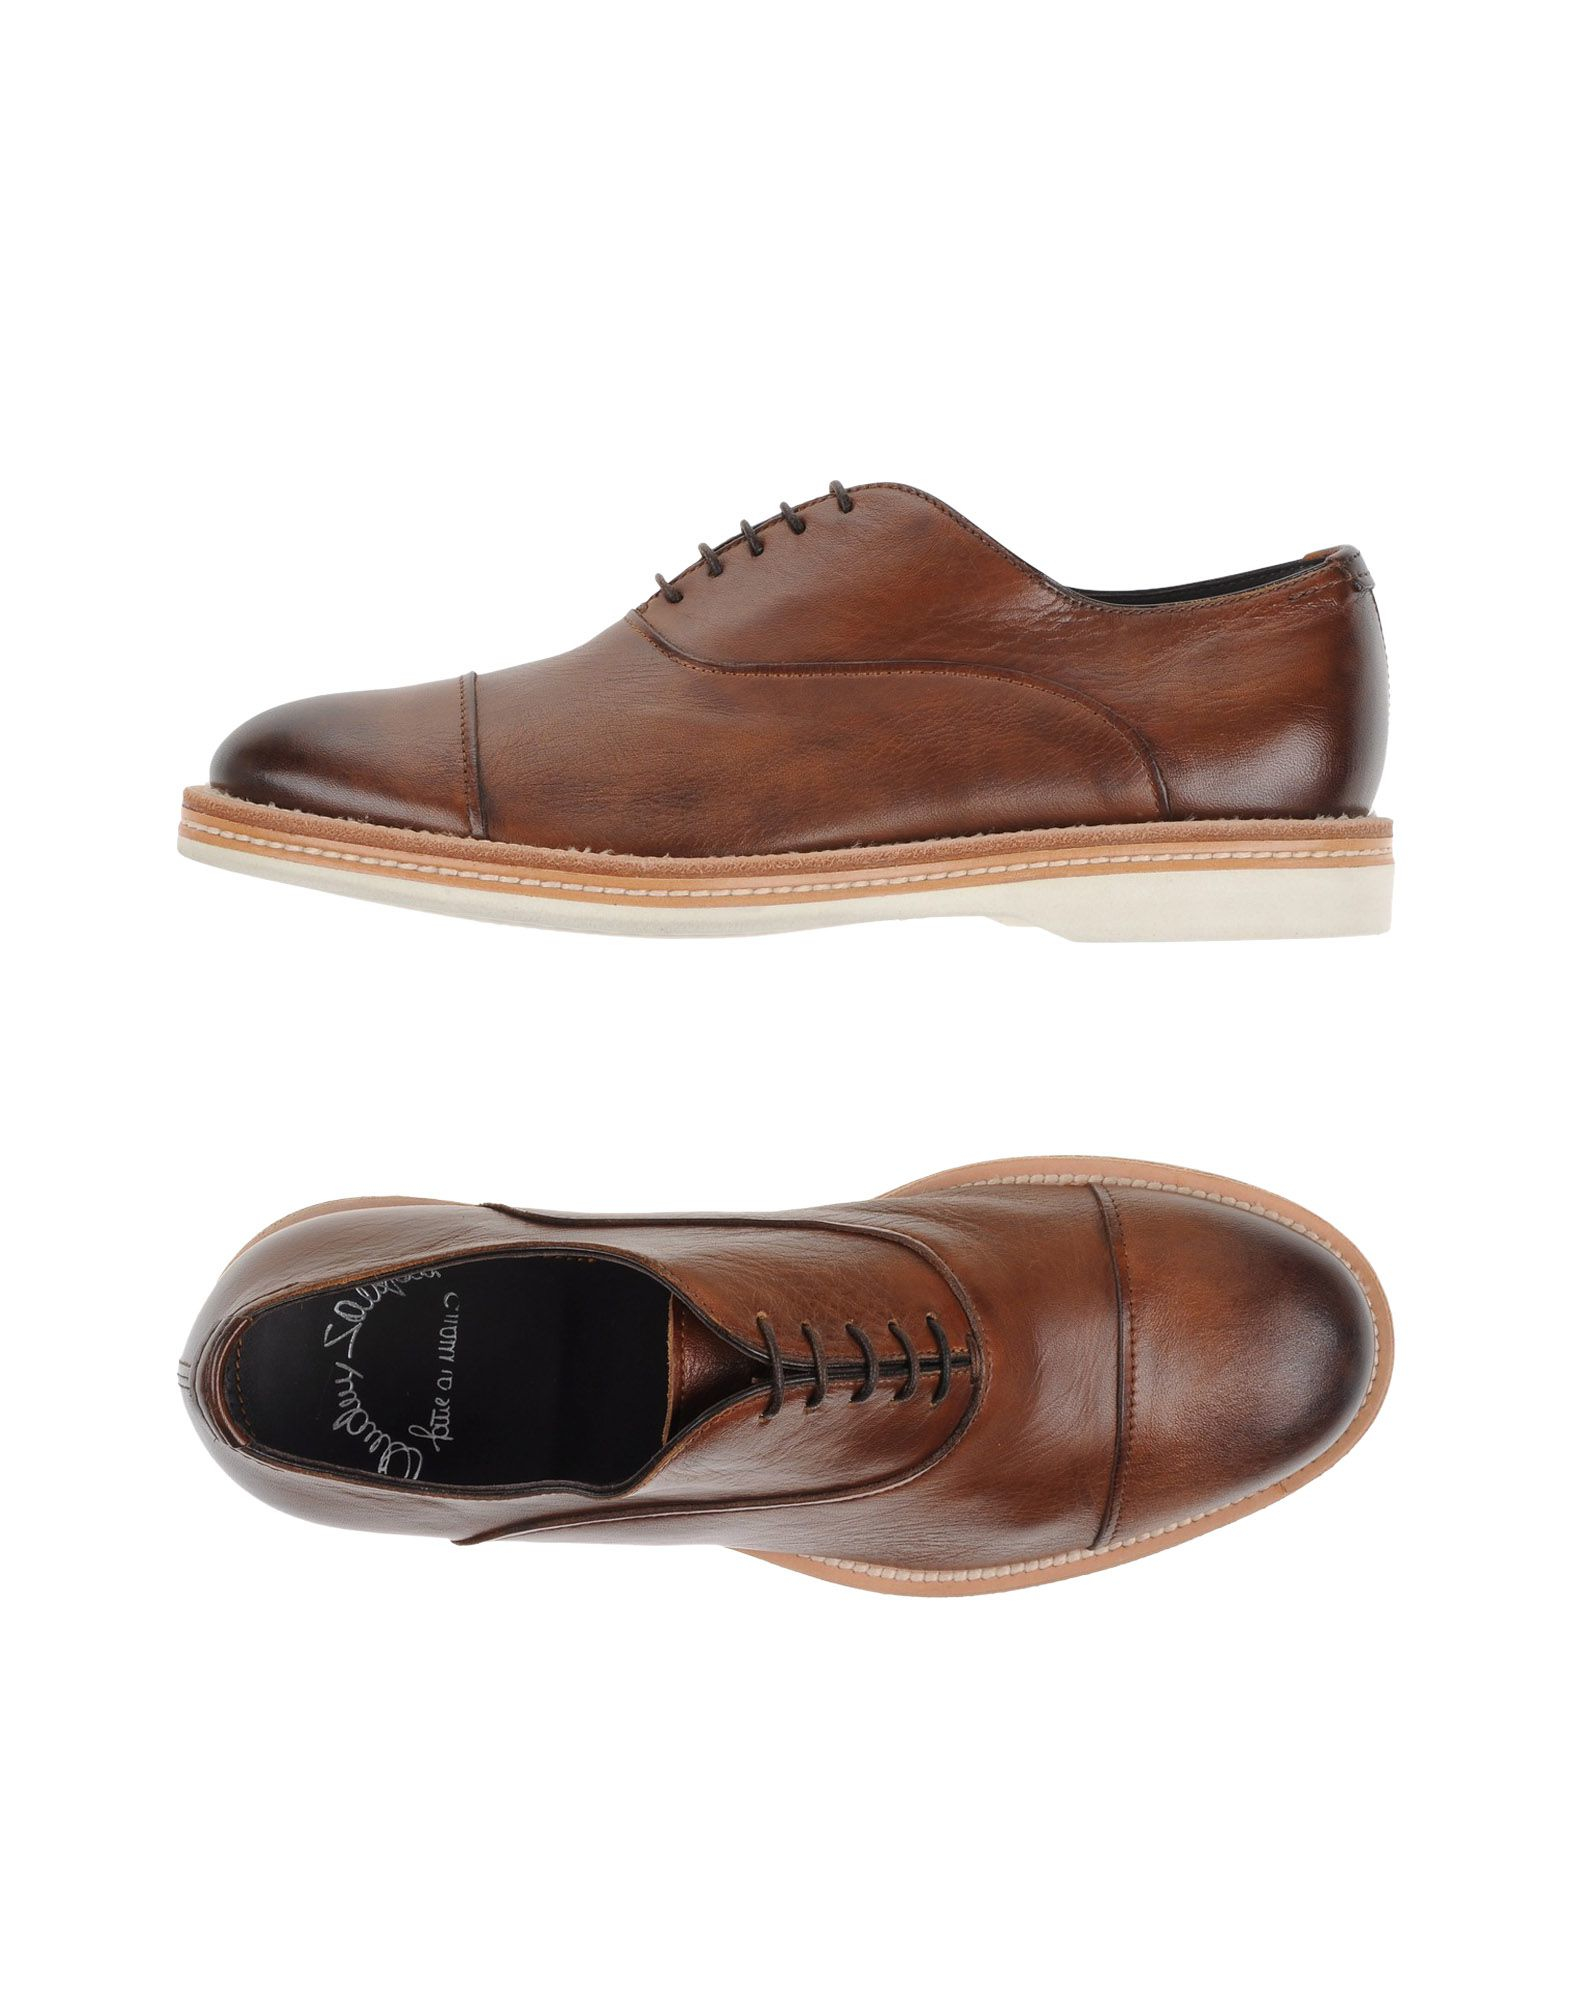 Santoni Stacked Heel Oxford Shoes In Brown For Men | Lyst